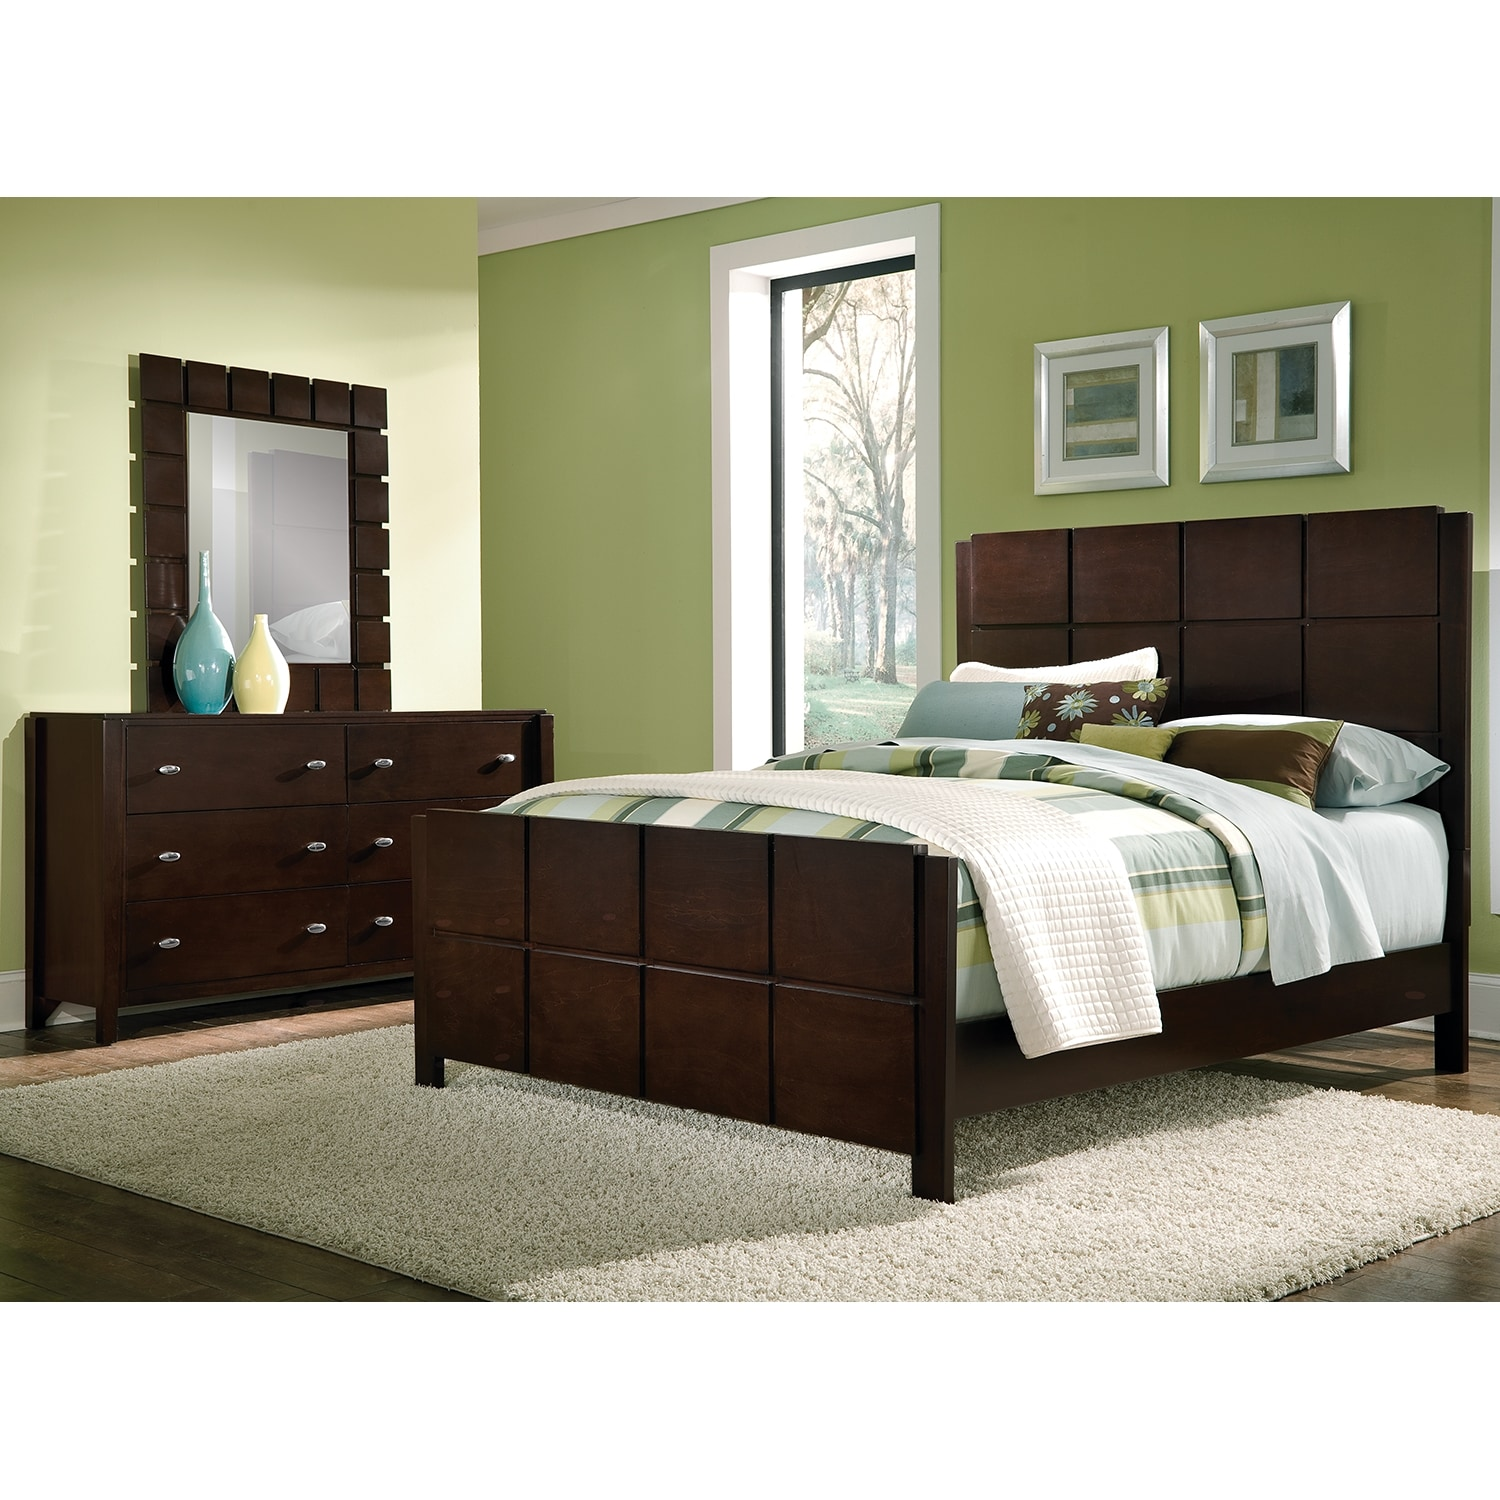 Bedroom Furniture: Mosaic 5-Piece King Bedroom Set - Dark Brown